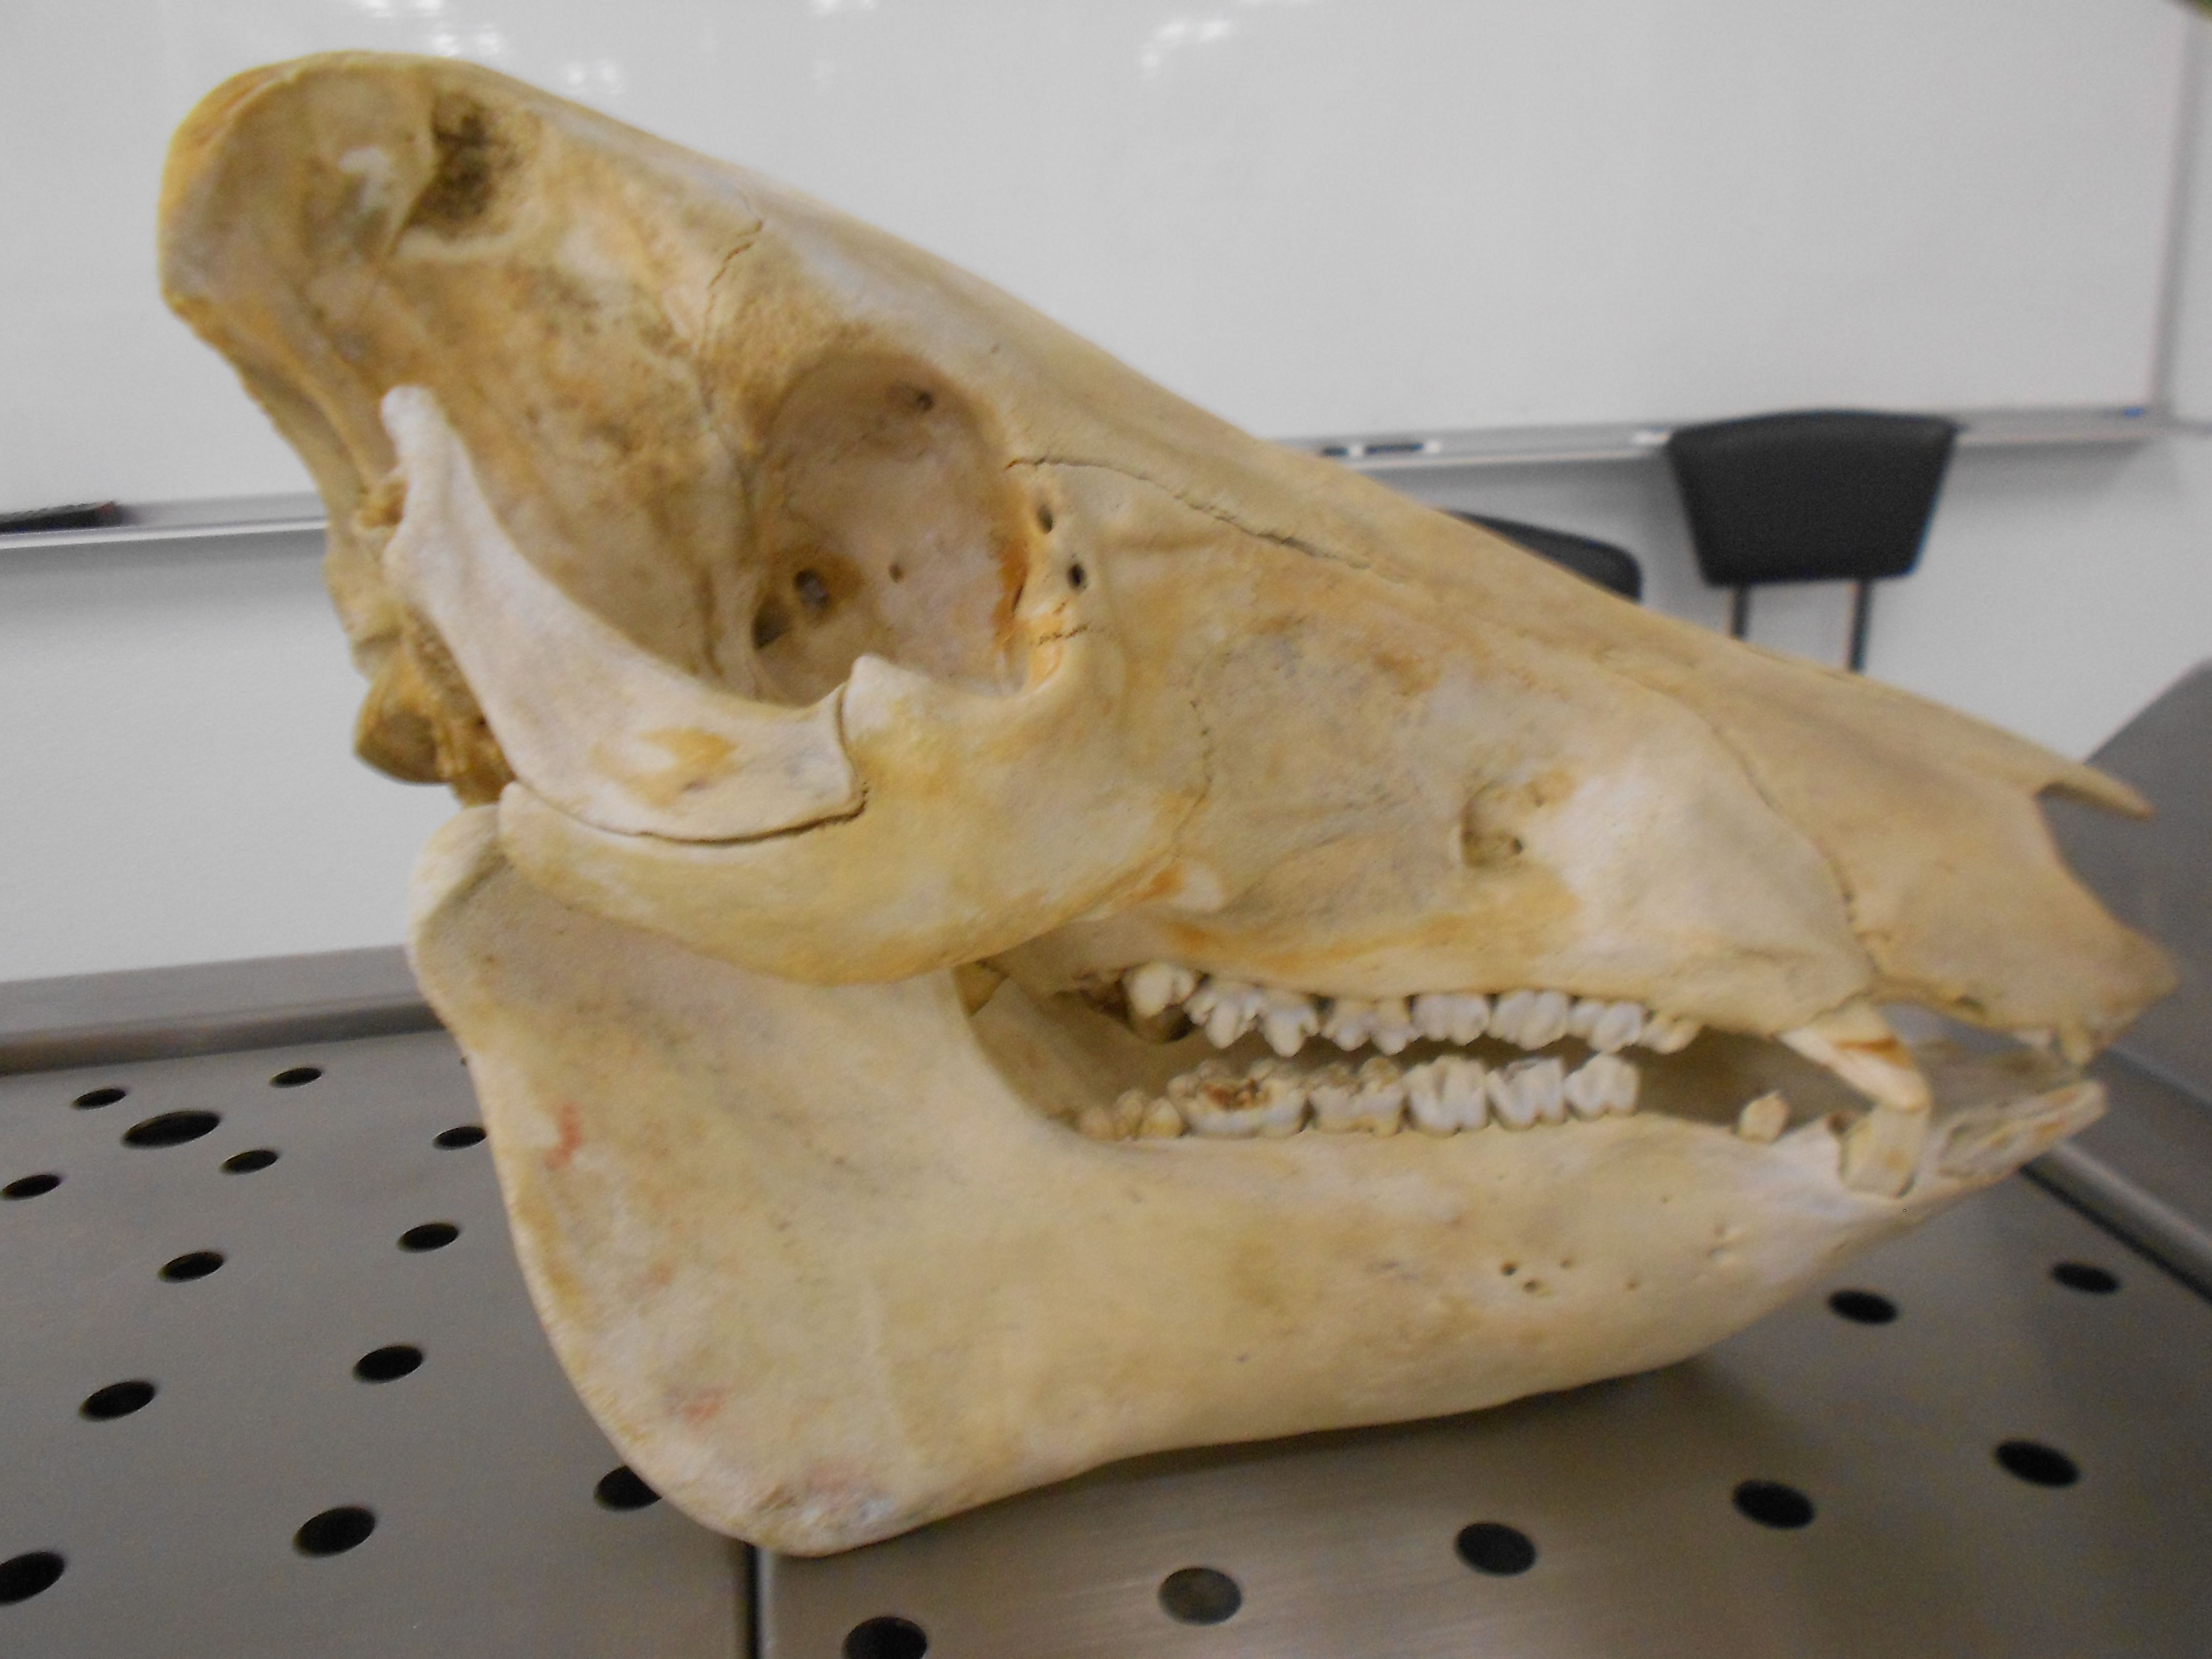 Porcine skull (pig) | Anatomy and physiology lab pics | Pinterest | Labs